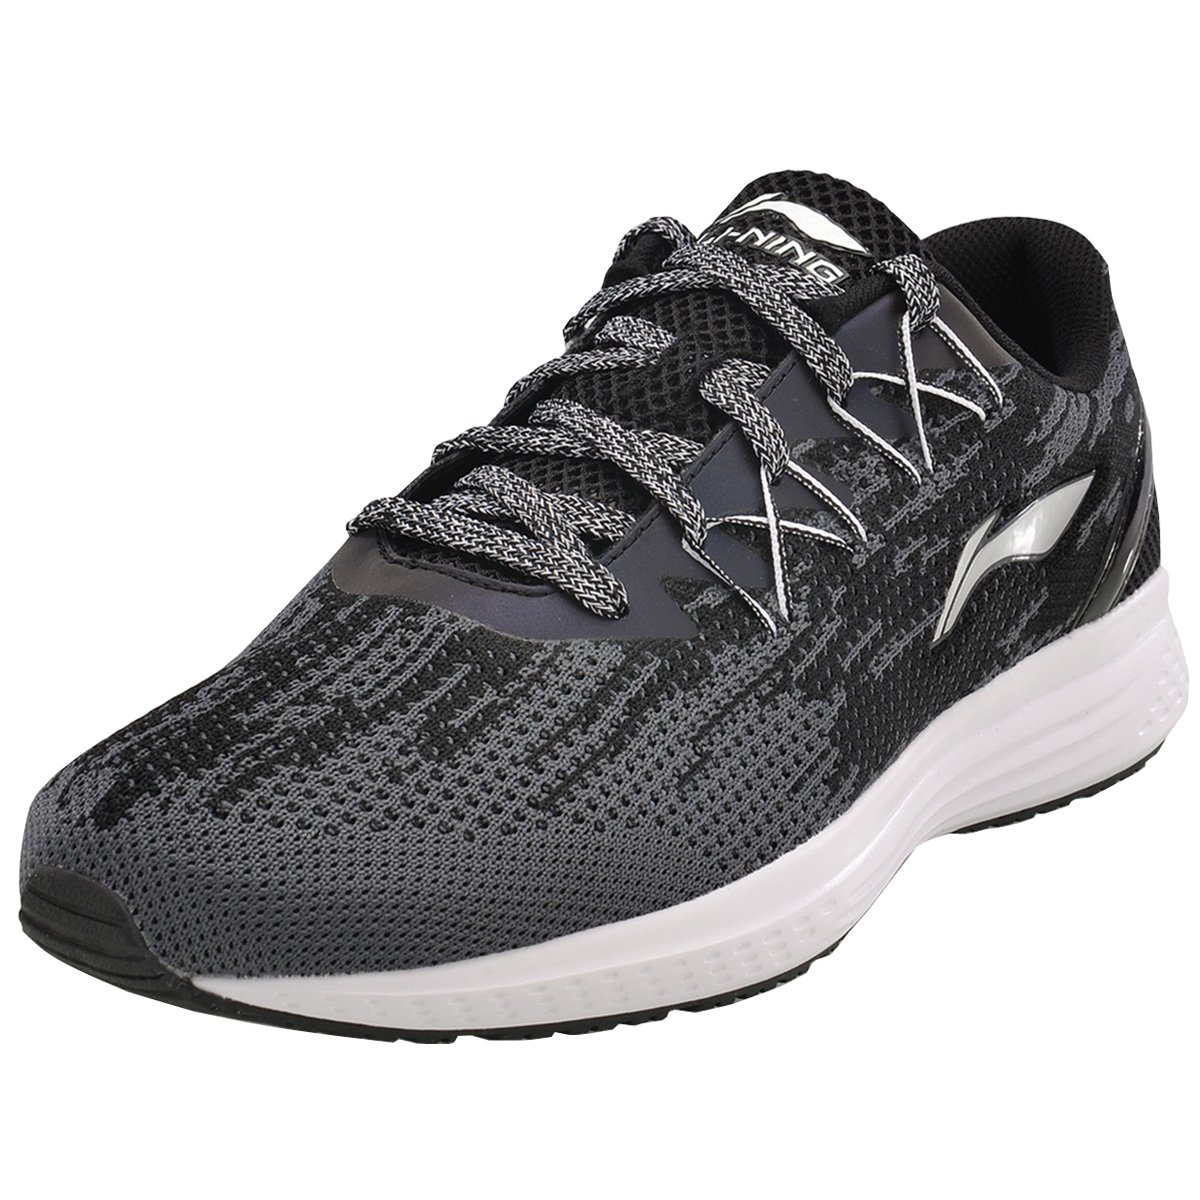 LI-NING Men's Running Shoe Cushion Breathable Sport Sneaker Casual Athletic Lightweight Speed Star Couple Shoes B077ZTQS58 US SIZE 12 FEET LENGTH 295MM|Black